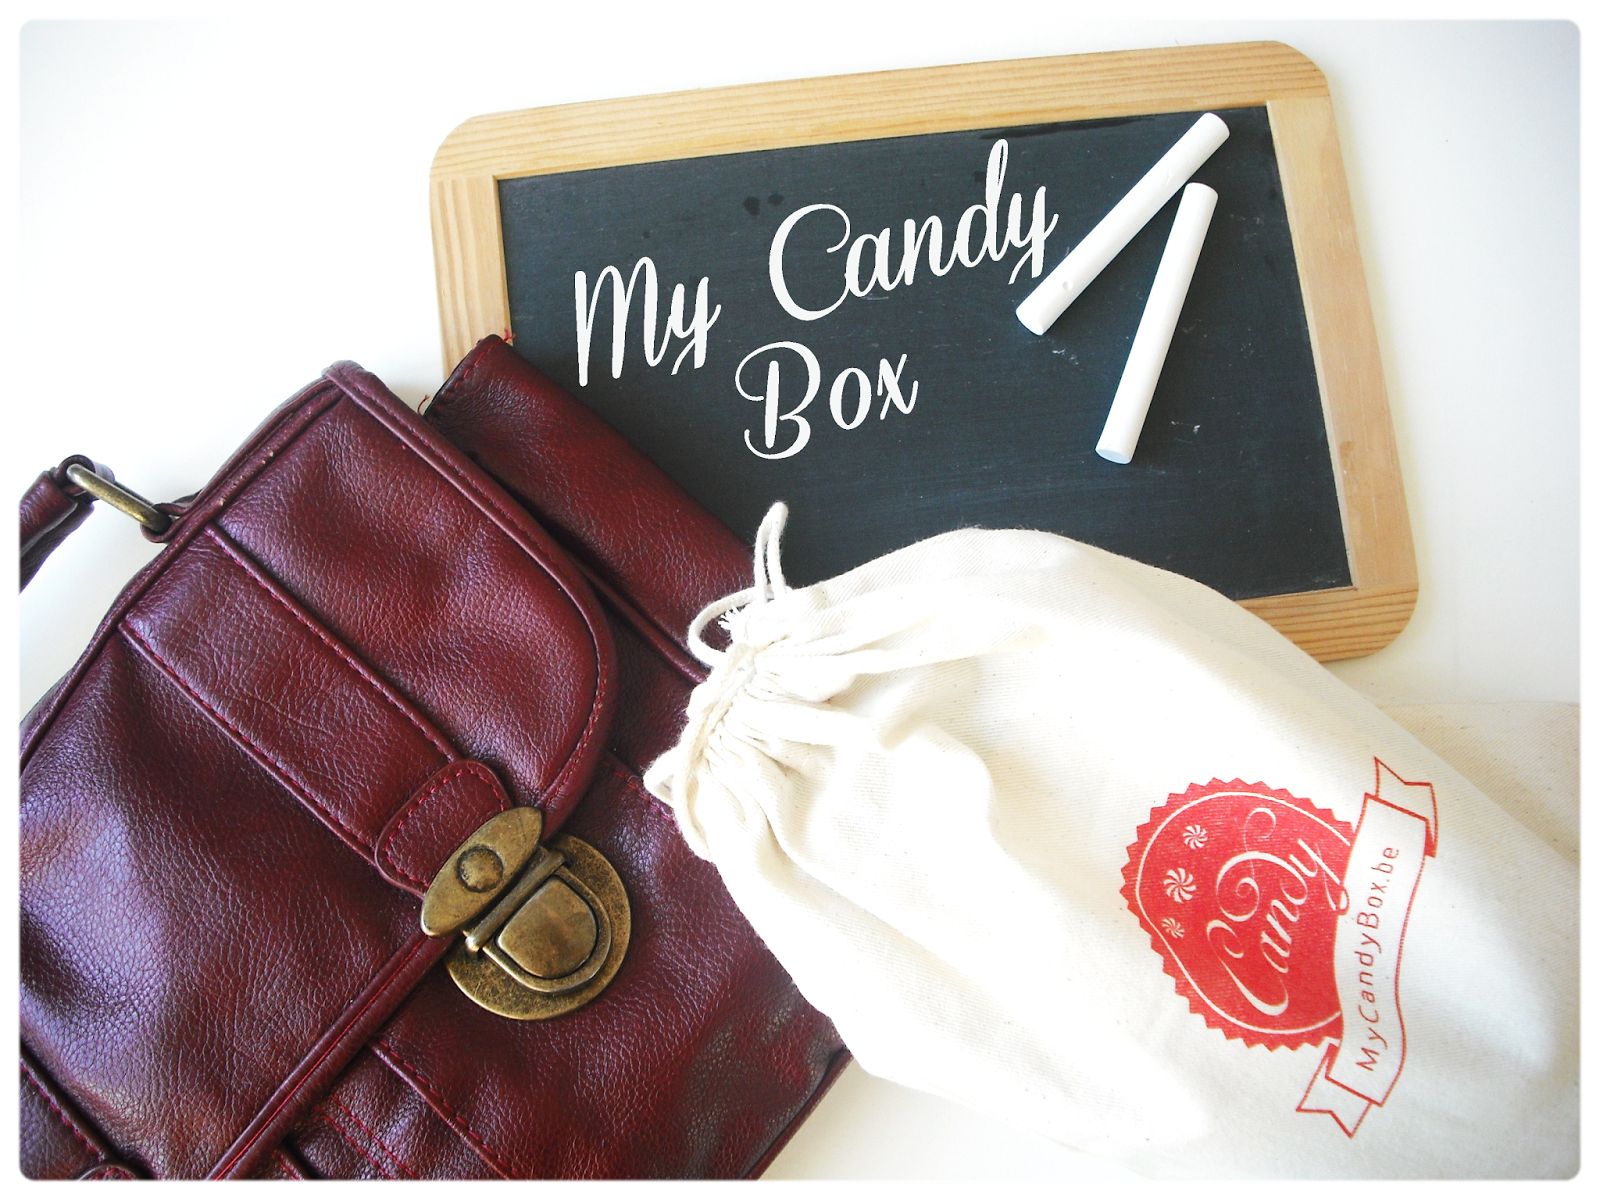 Box Particulier My Candy Box Une Box Gourmande Je Veux Tout Tester Blog